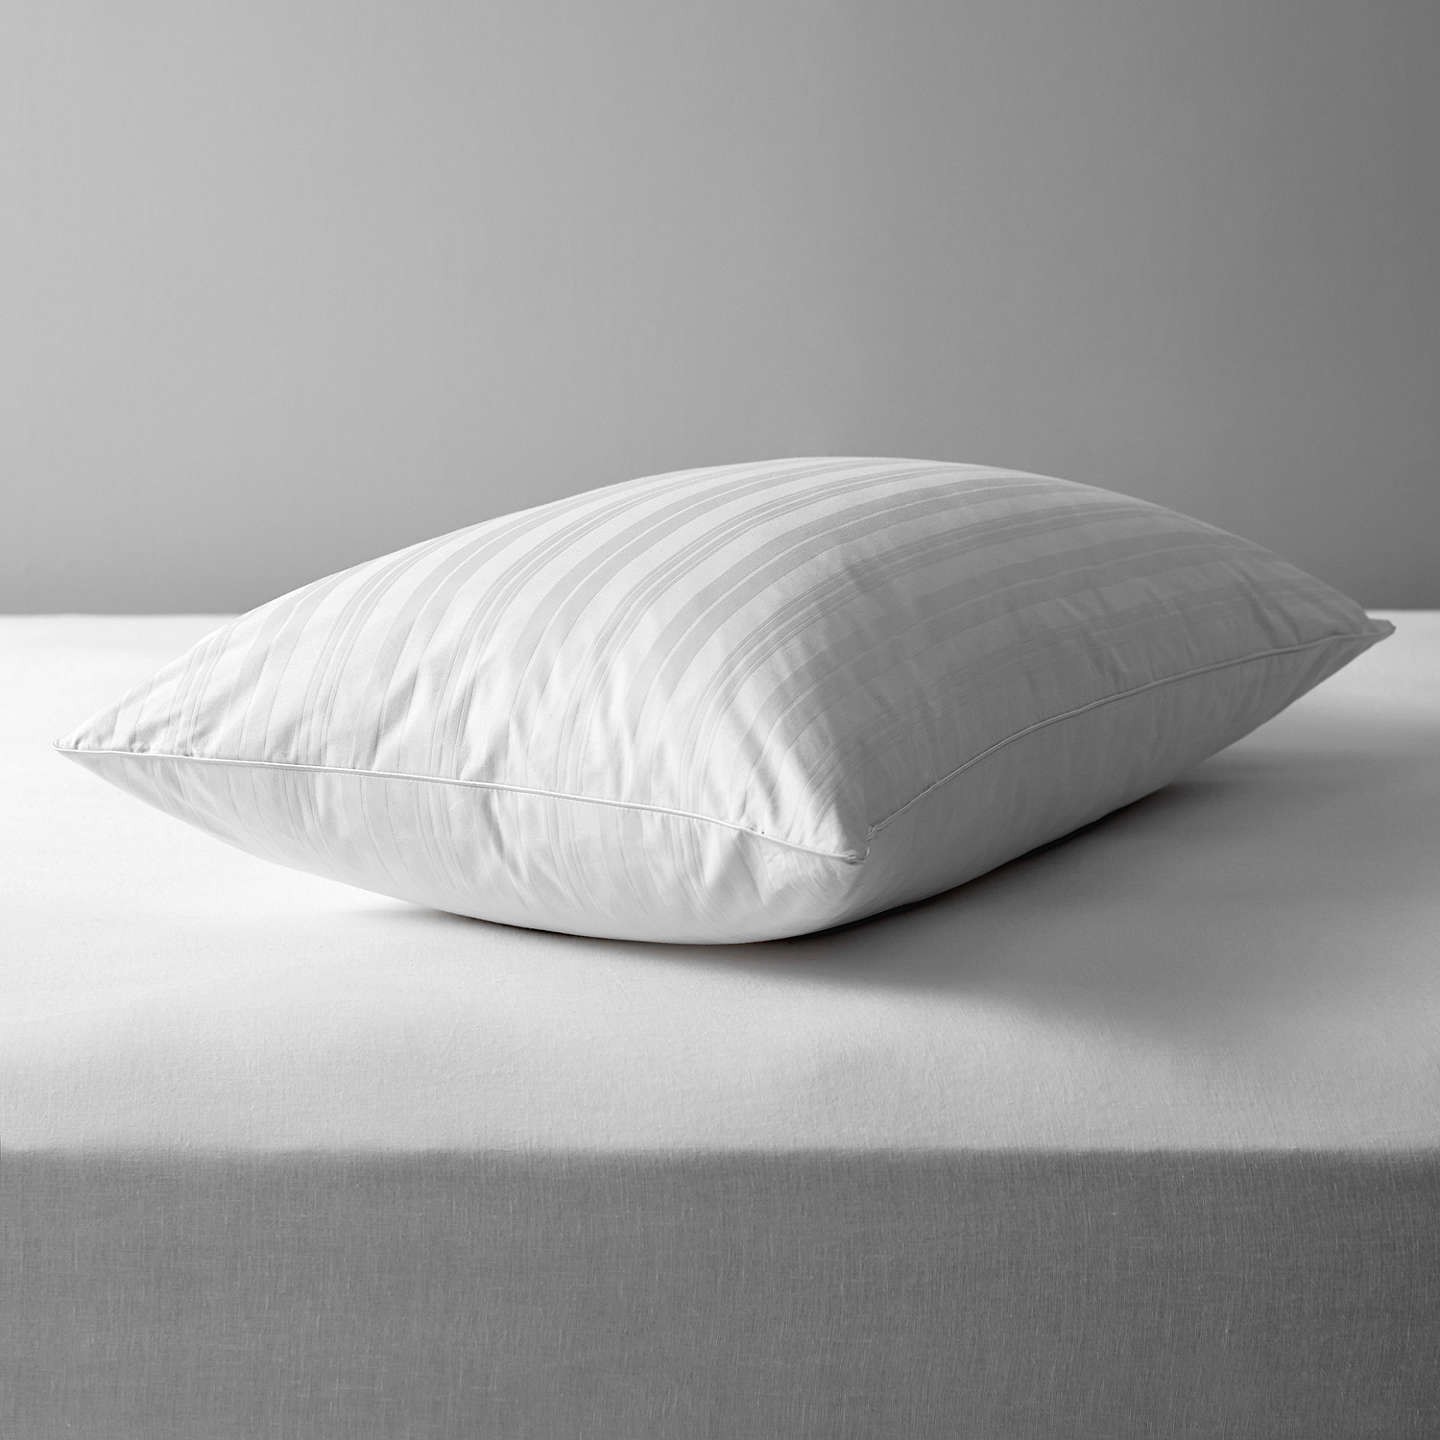 BuyJohn Lewis Natural Collection Siberian Goose Feather and Down Standard Pillow, Medium Online at johnlewis.com